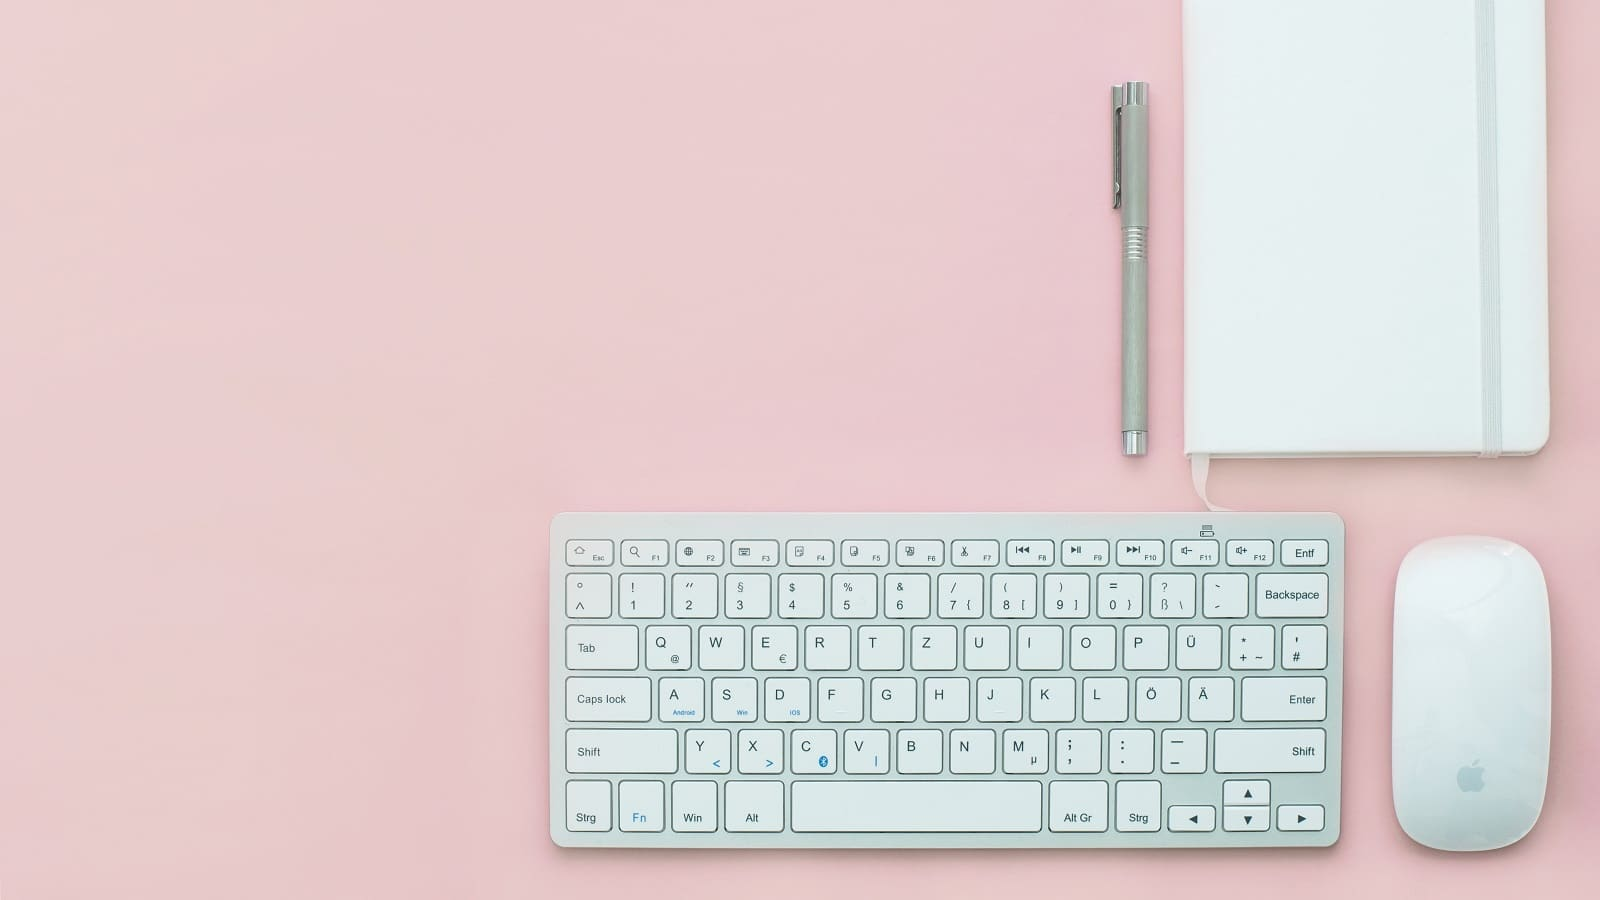 Wireless keyboard, wireless mouse, notebook and pen on a pink table